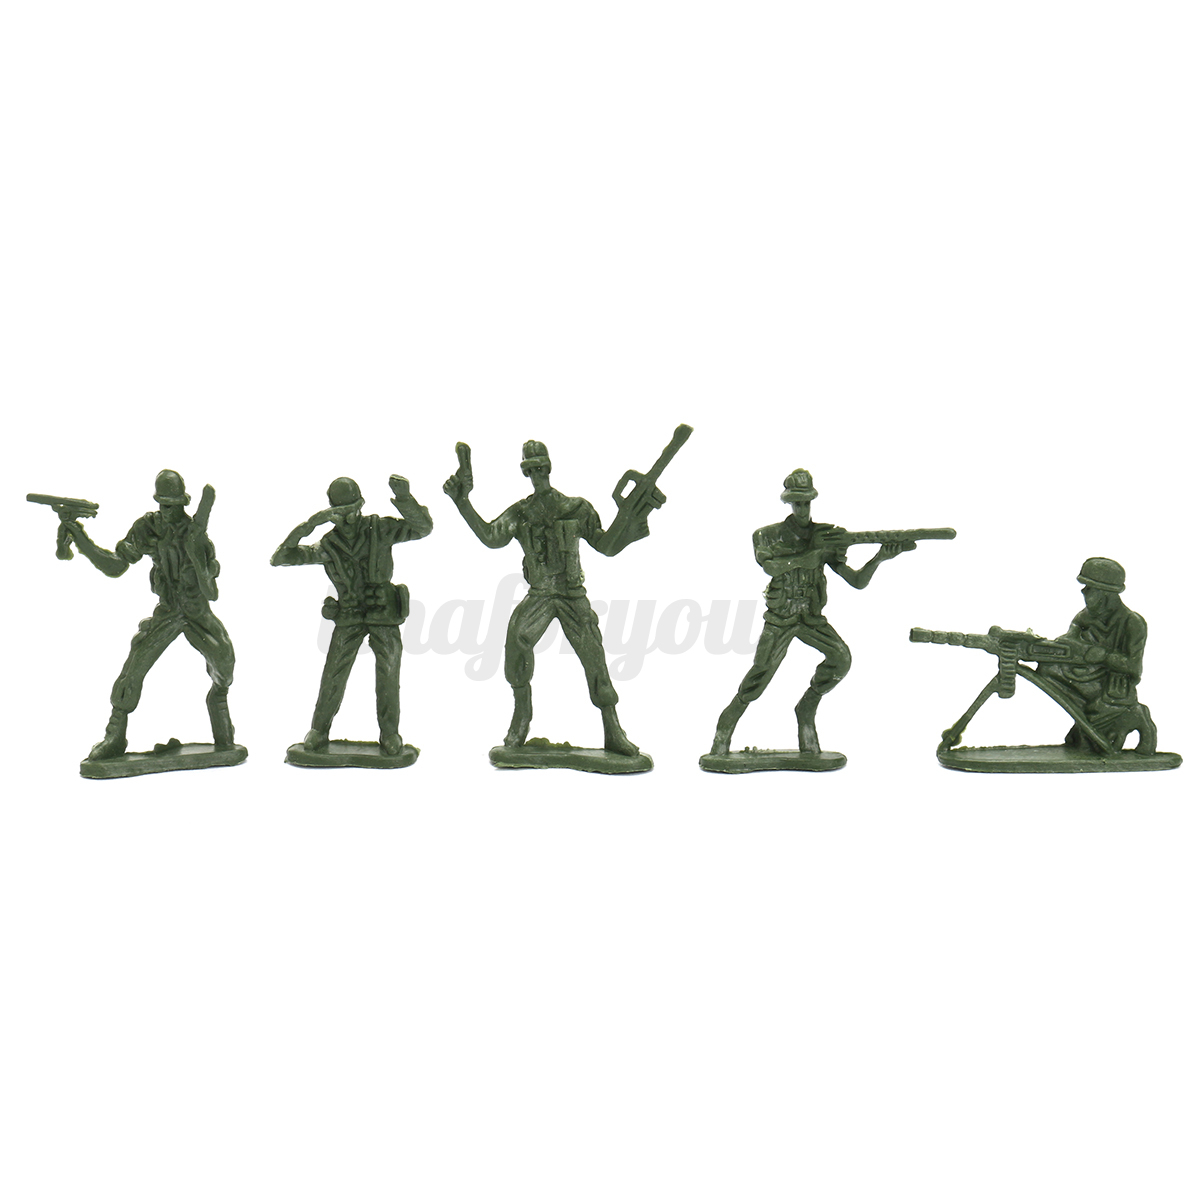 238PCS-Military-Plastic-Soldiers-Army-Men-Figures-Tanks-Accessories-Play-Set-Toy thumbnail 3